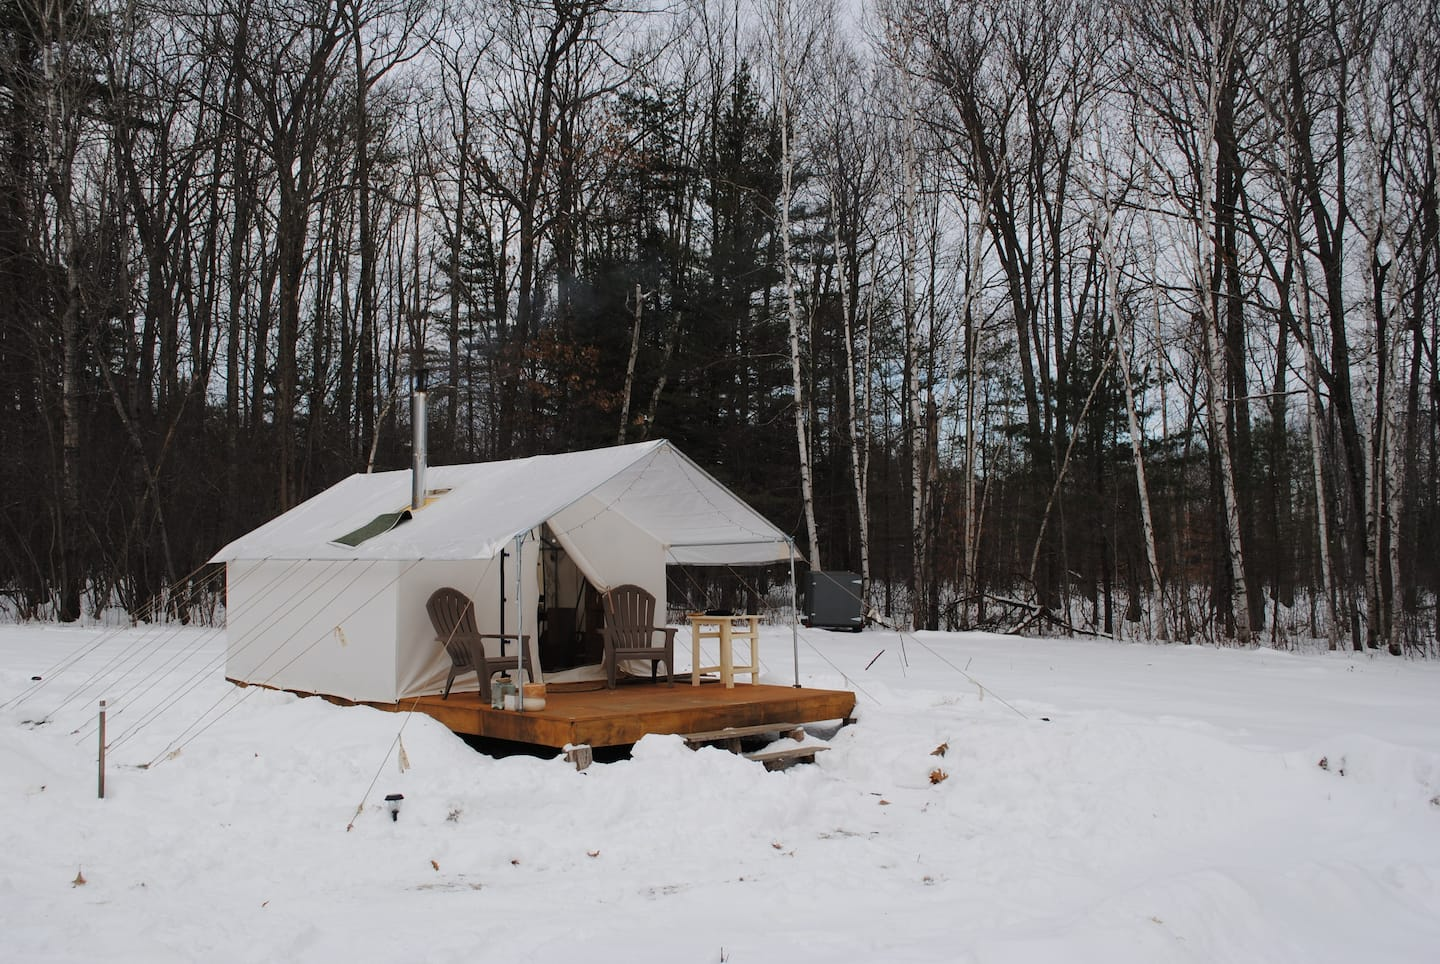 Scenic Rural Camp Site -New Glampshire winter